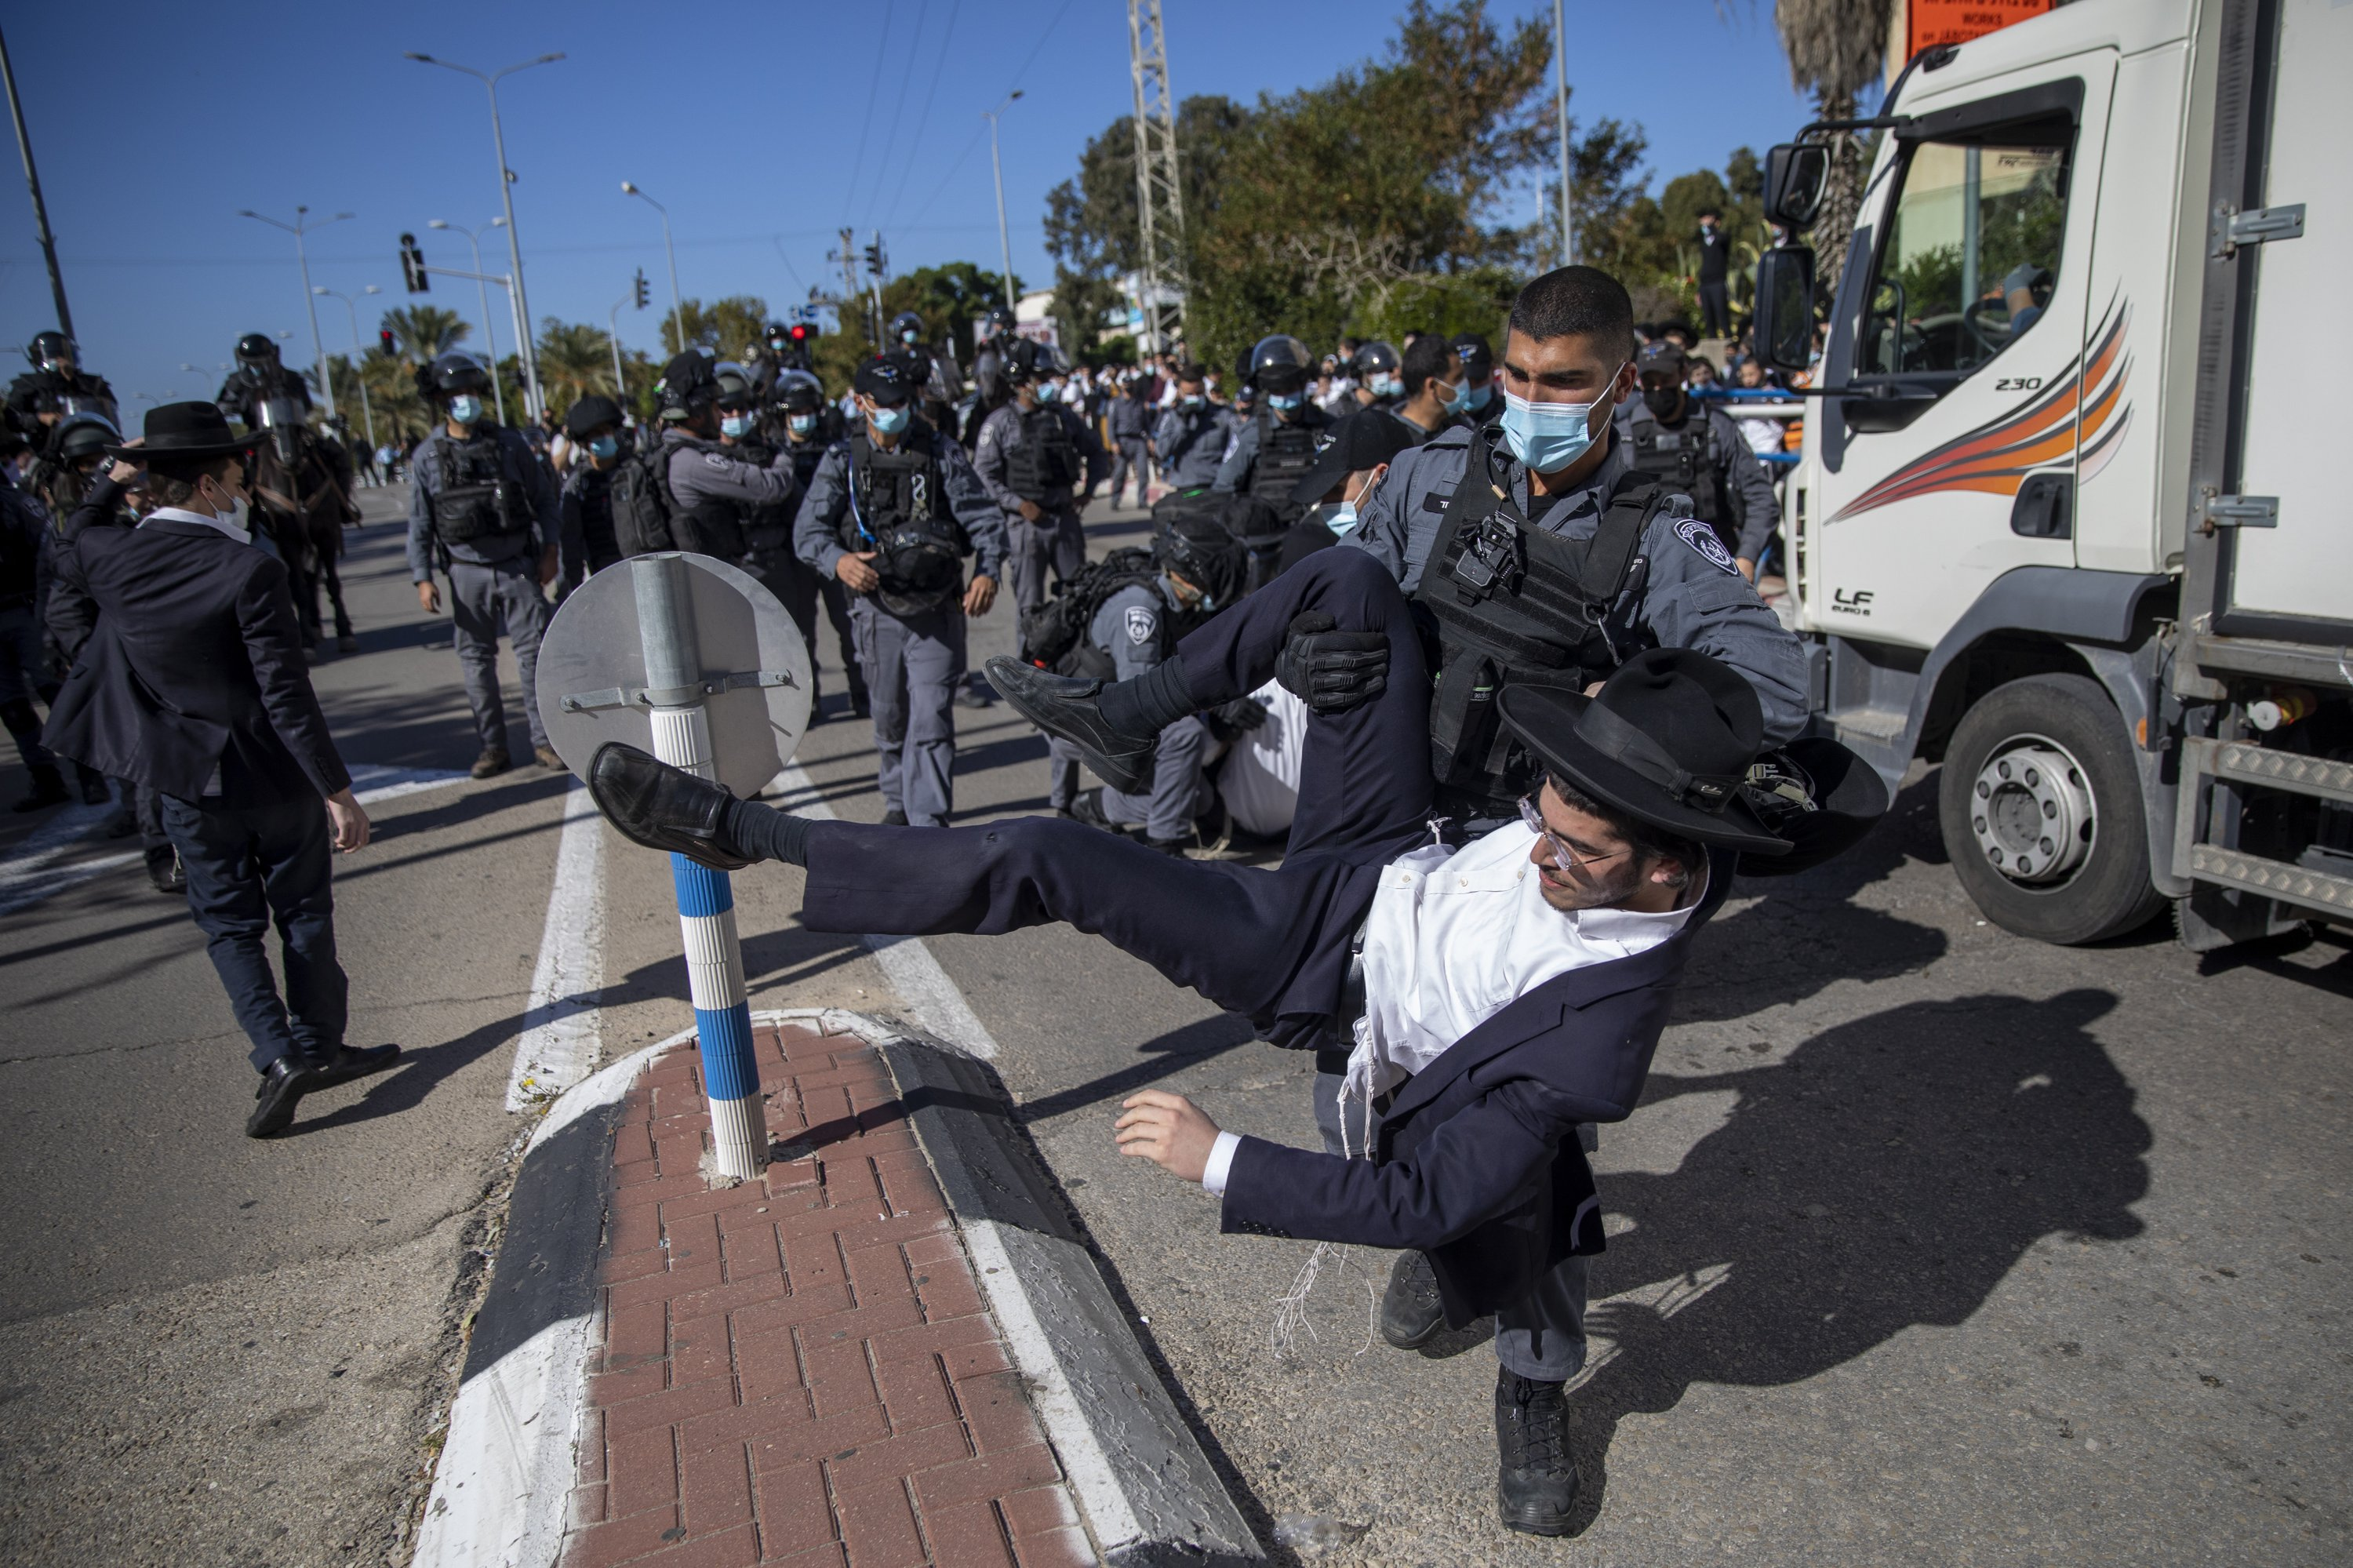 Israel's ultra-Orthodox reject criticism, defy virus rules